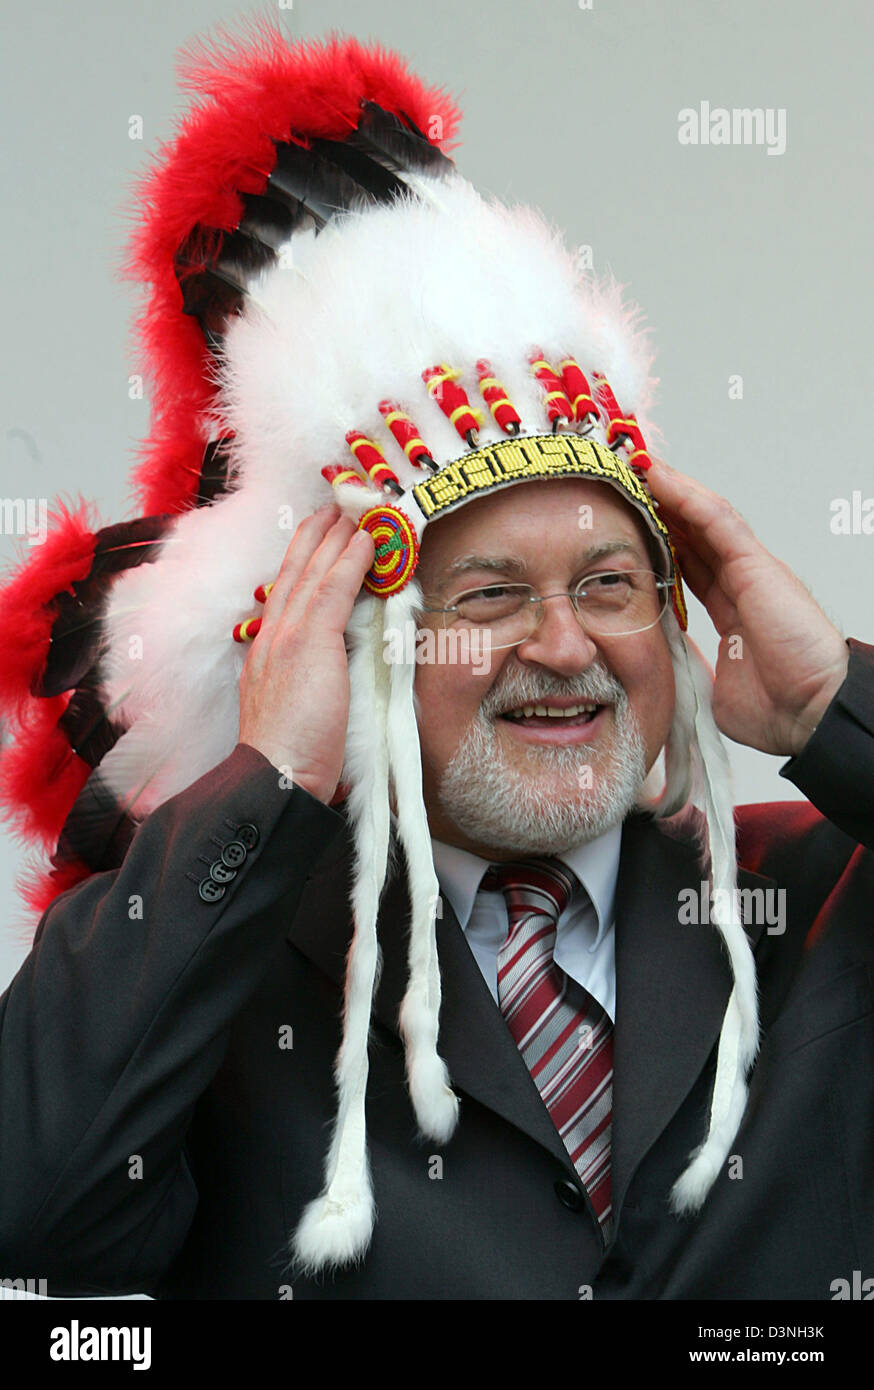 Peter Harry Cartensen, head of the German Council,  poses with a indigenous feathered headdress at German Council's - Stock Image